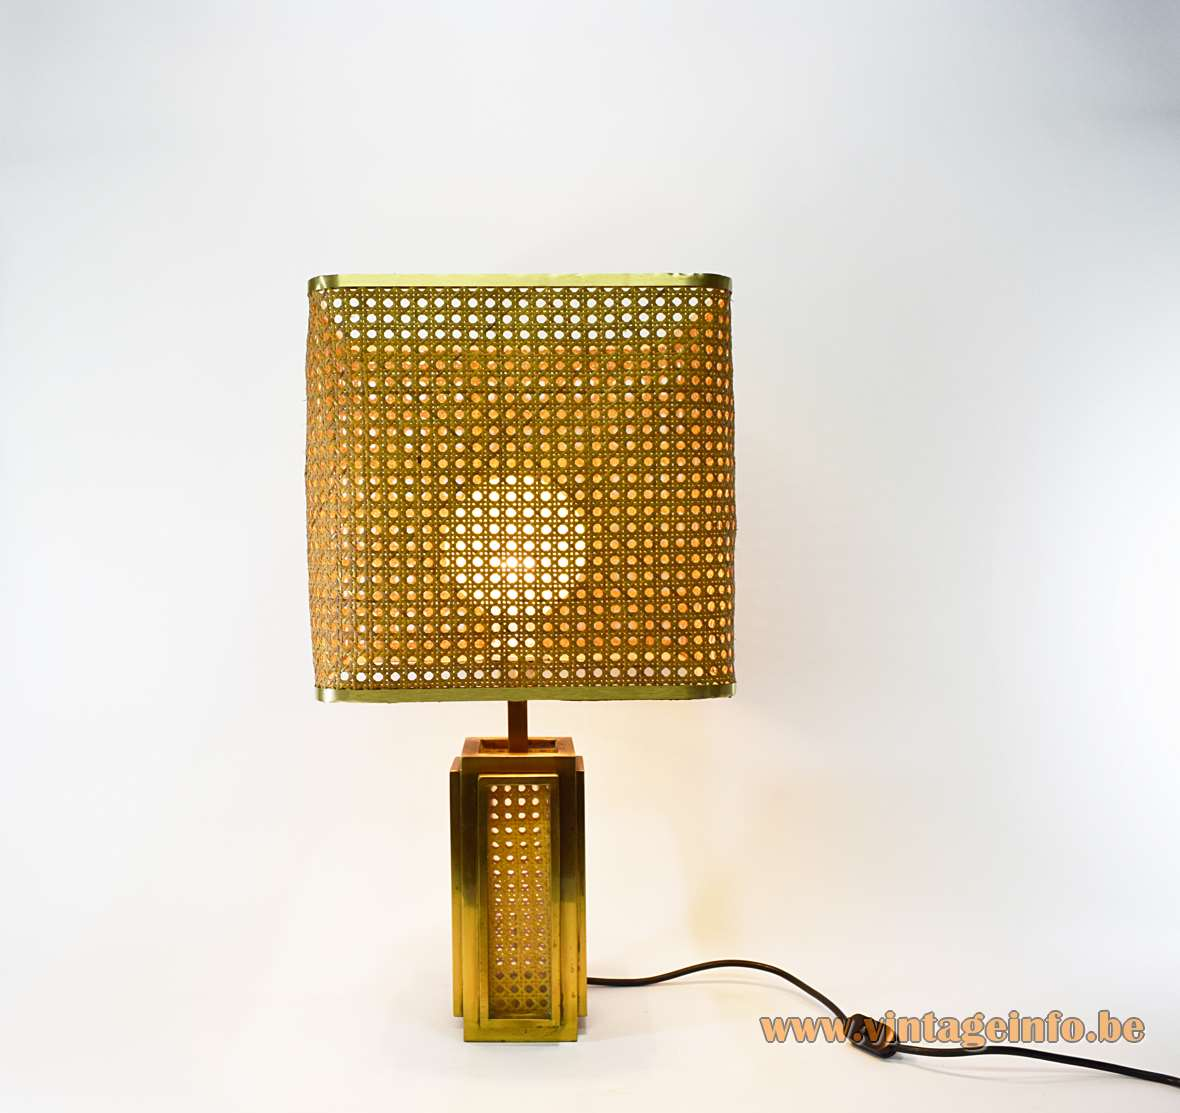 Italian Brass & Cane Table Lamp Square base and lampshade 1960s rattan 1970s MCM